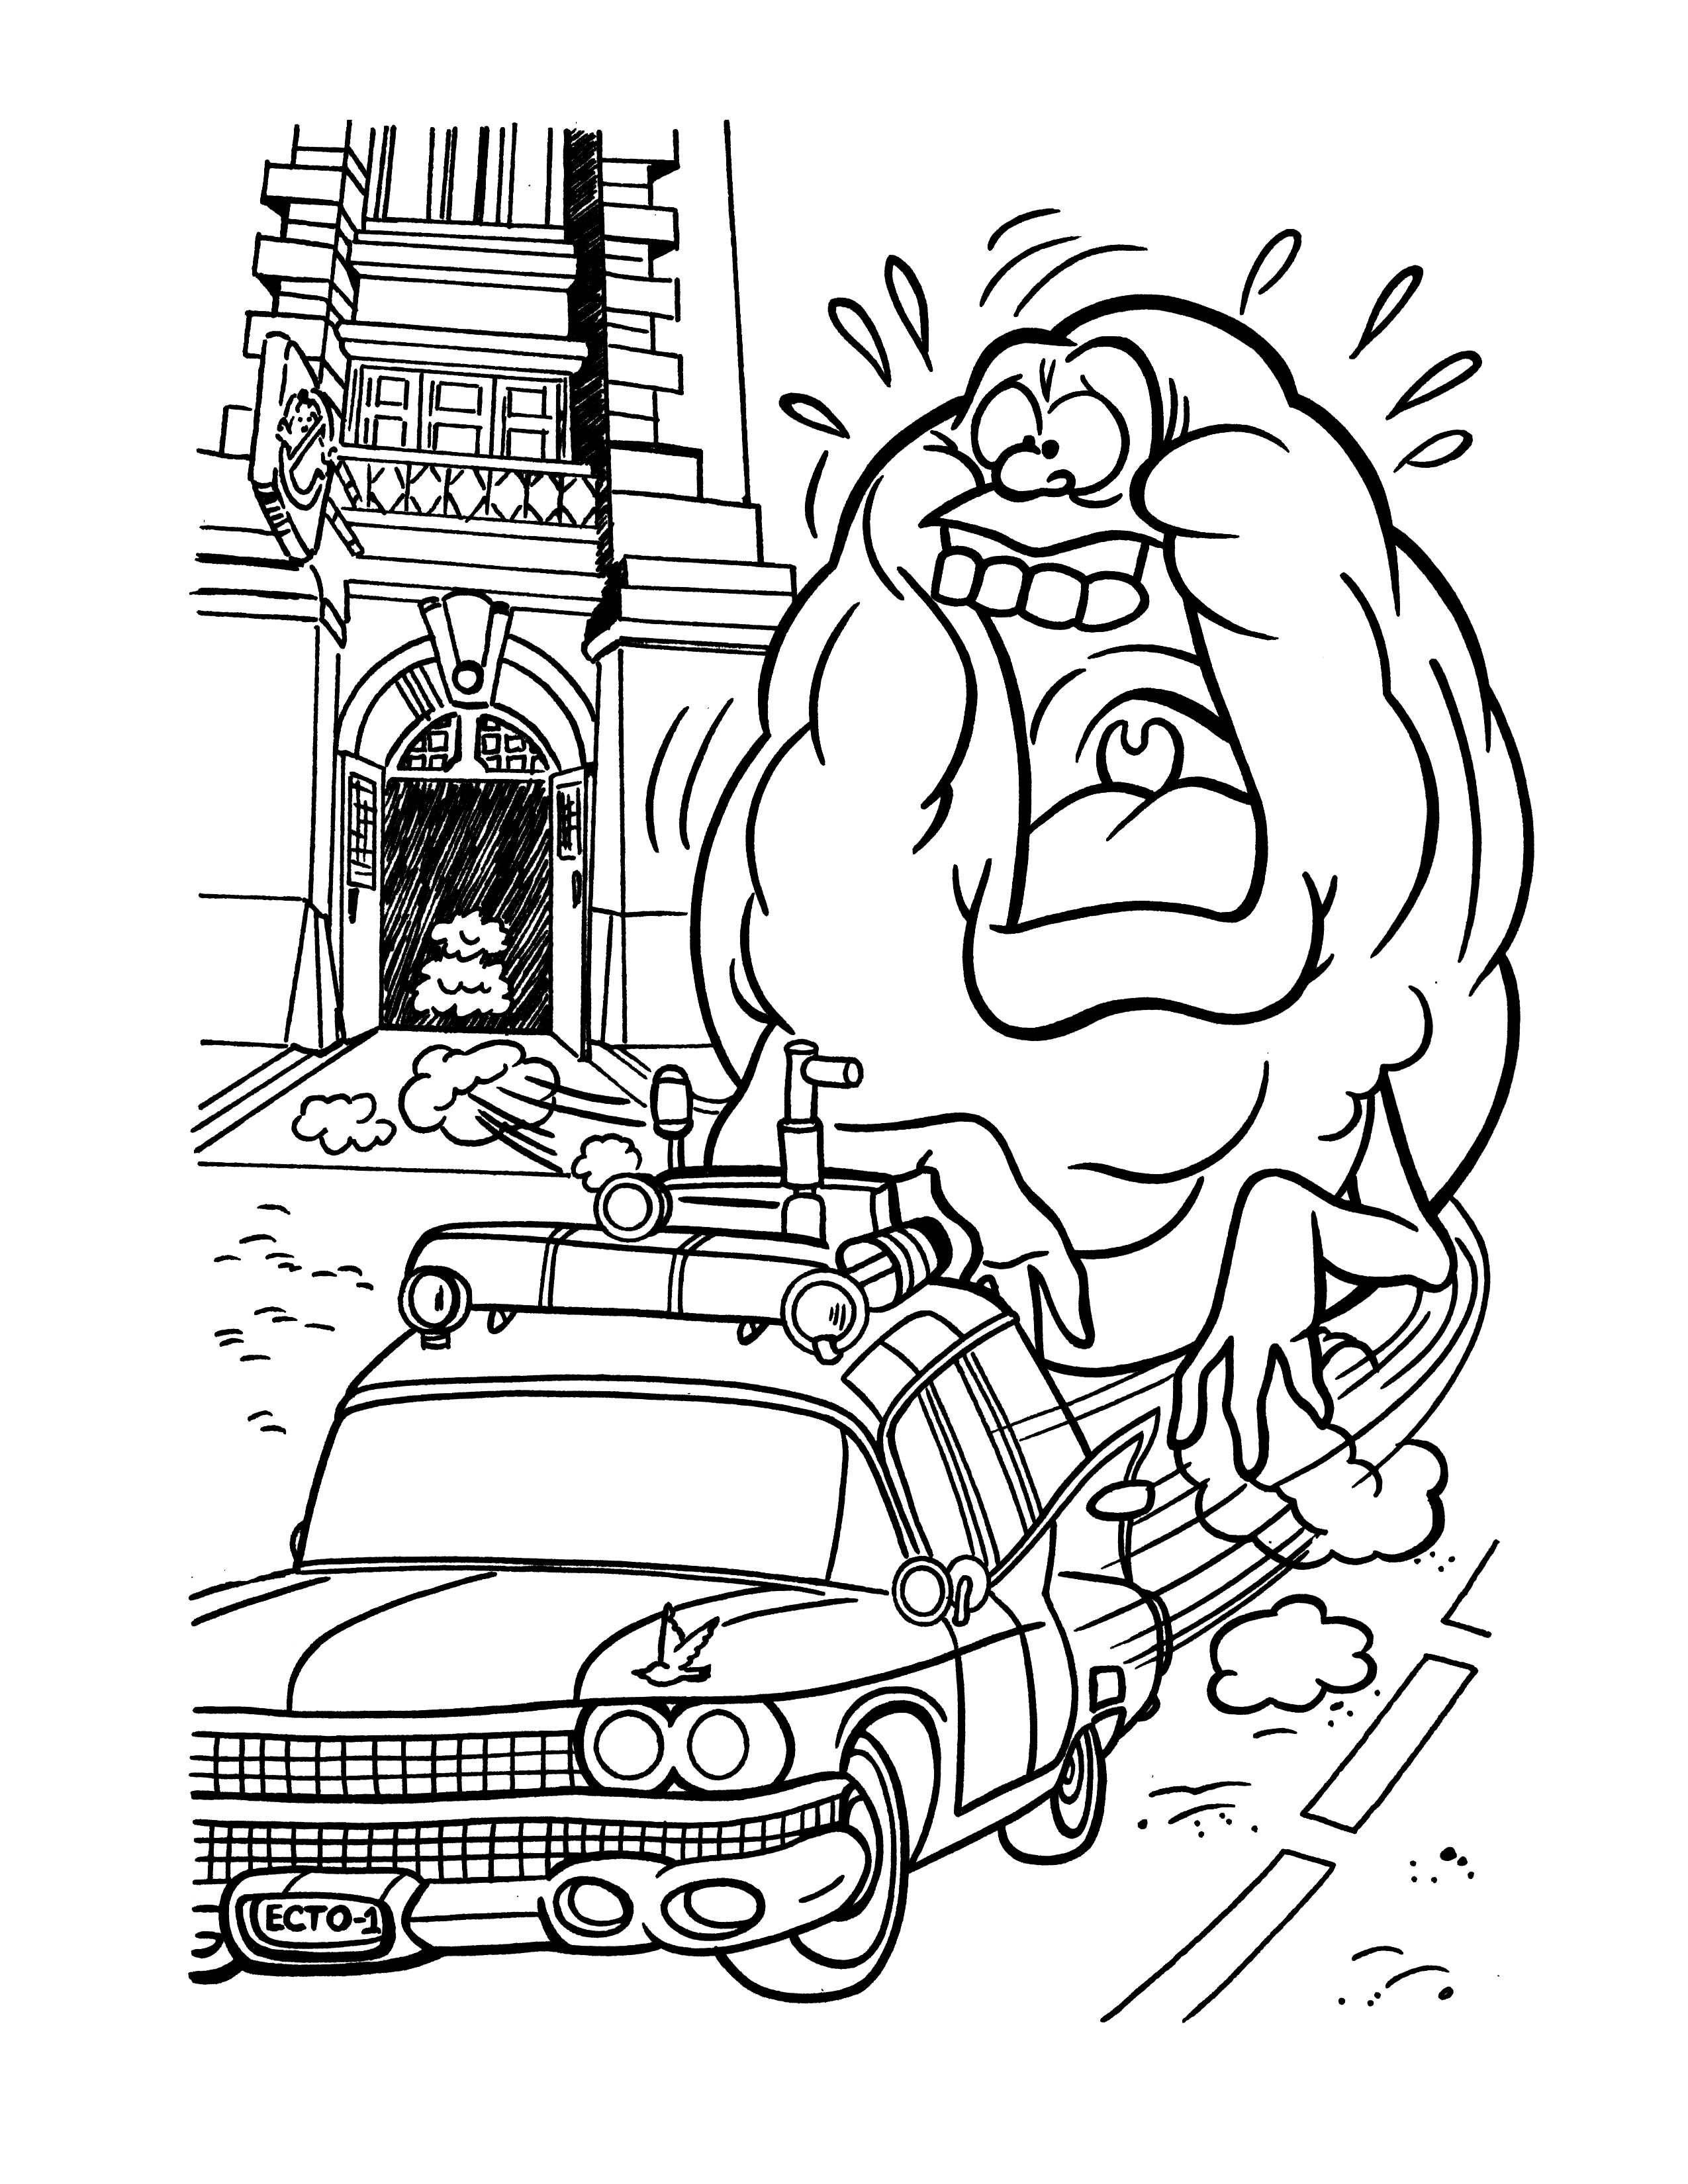 coloring ghostbusters slimer ghostbusters drawing at getdrawings free download coloring ghostbusters